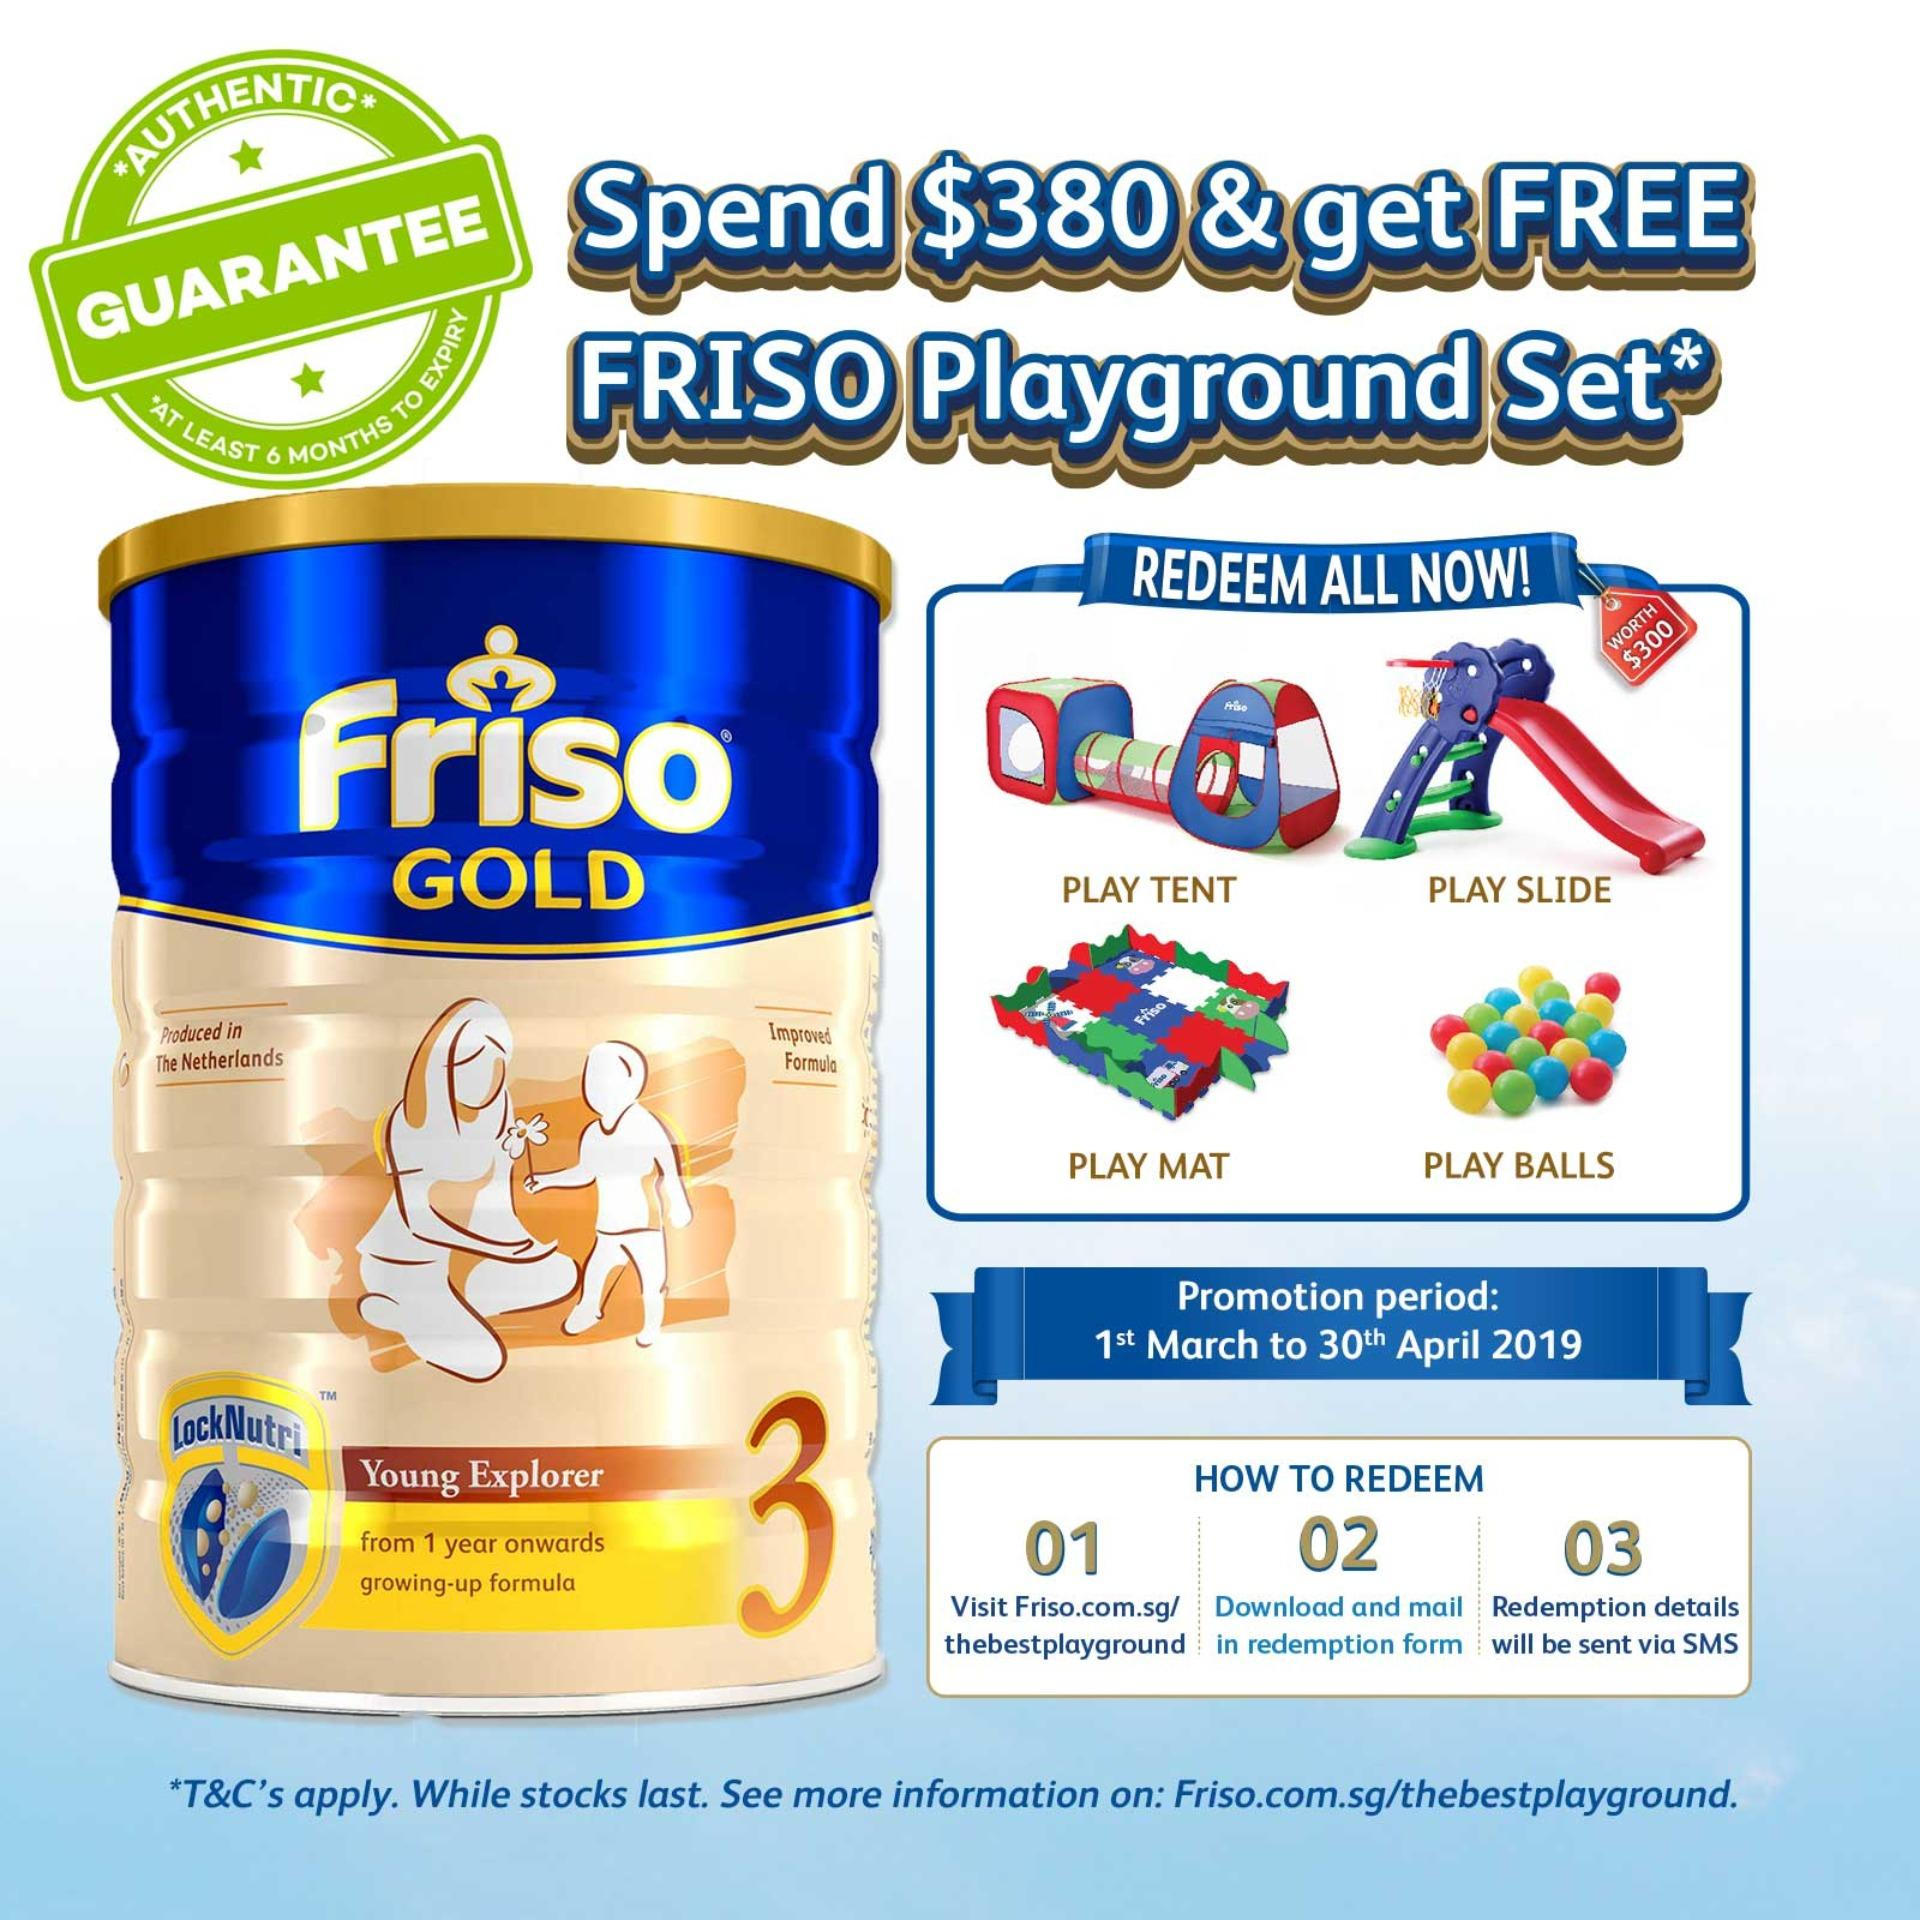 Friso Gold 3 Growing Up Milk 1.8kg By Lazada Retail Friso.